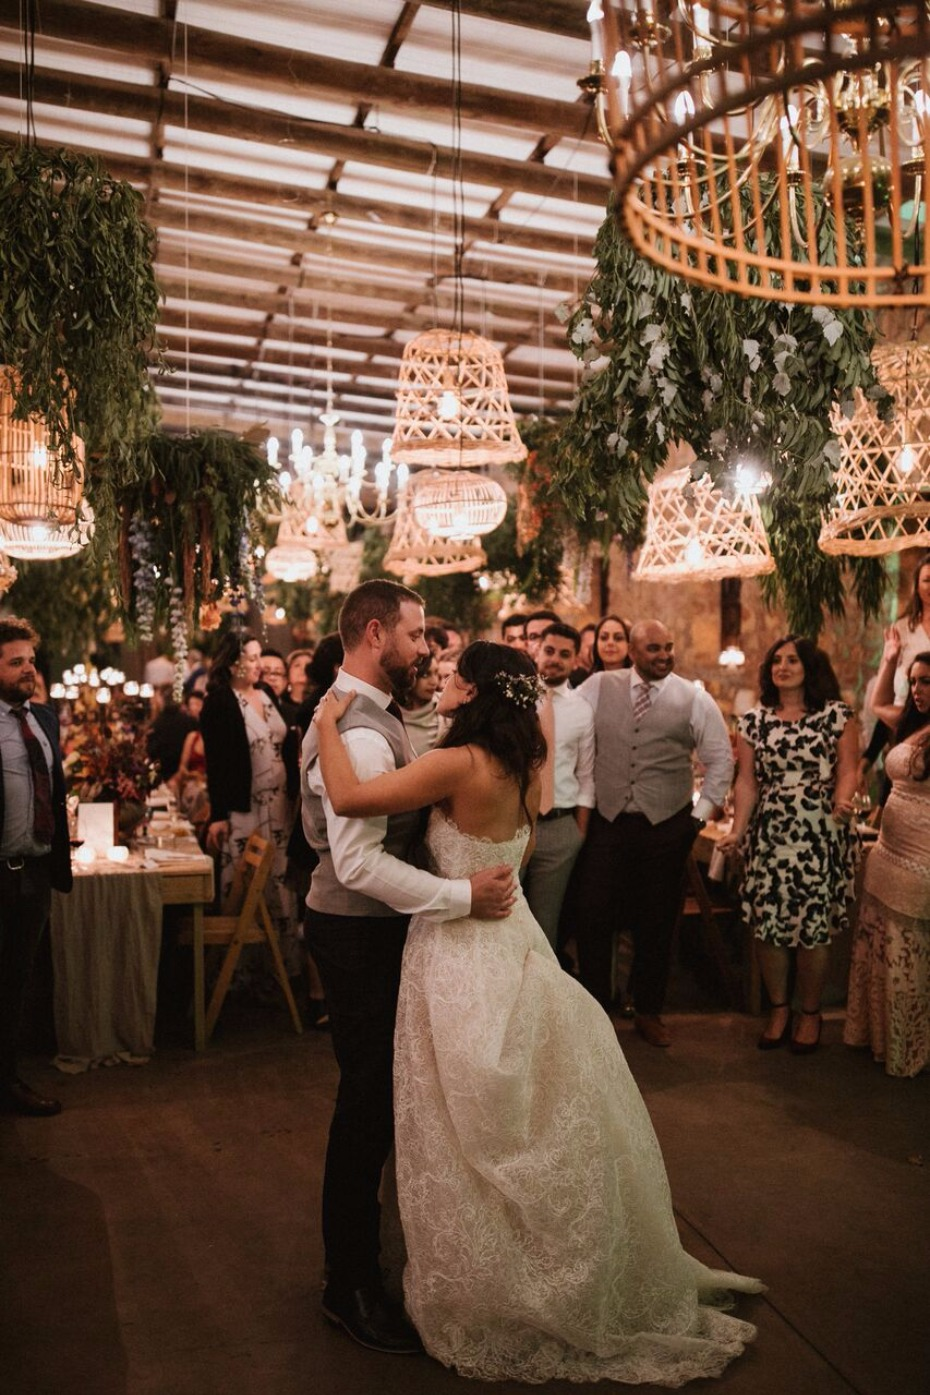 First dance romance with basket lighting